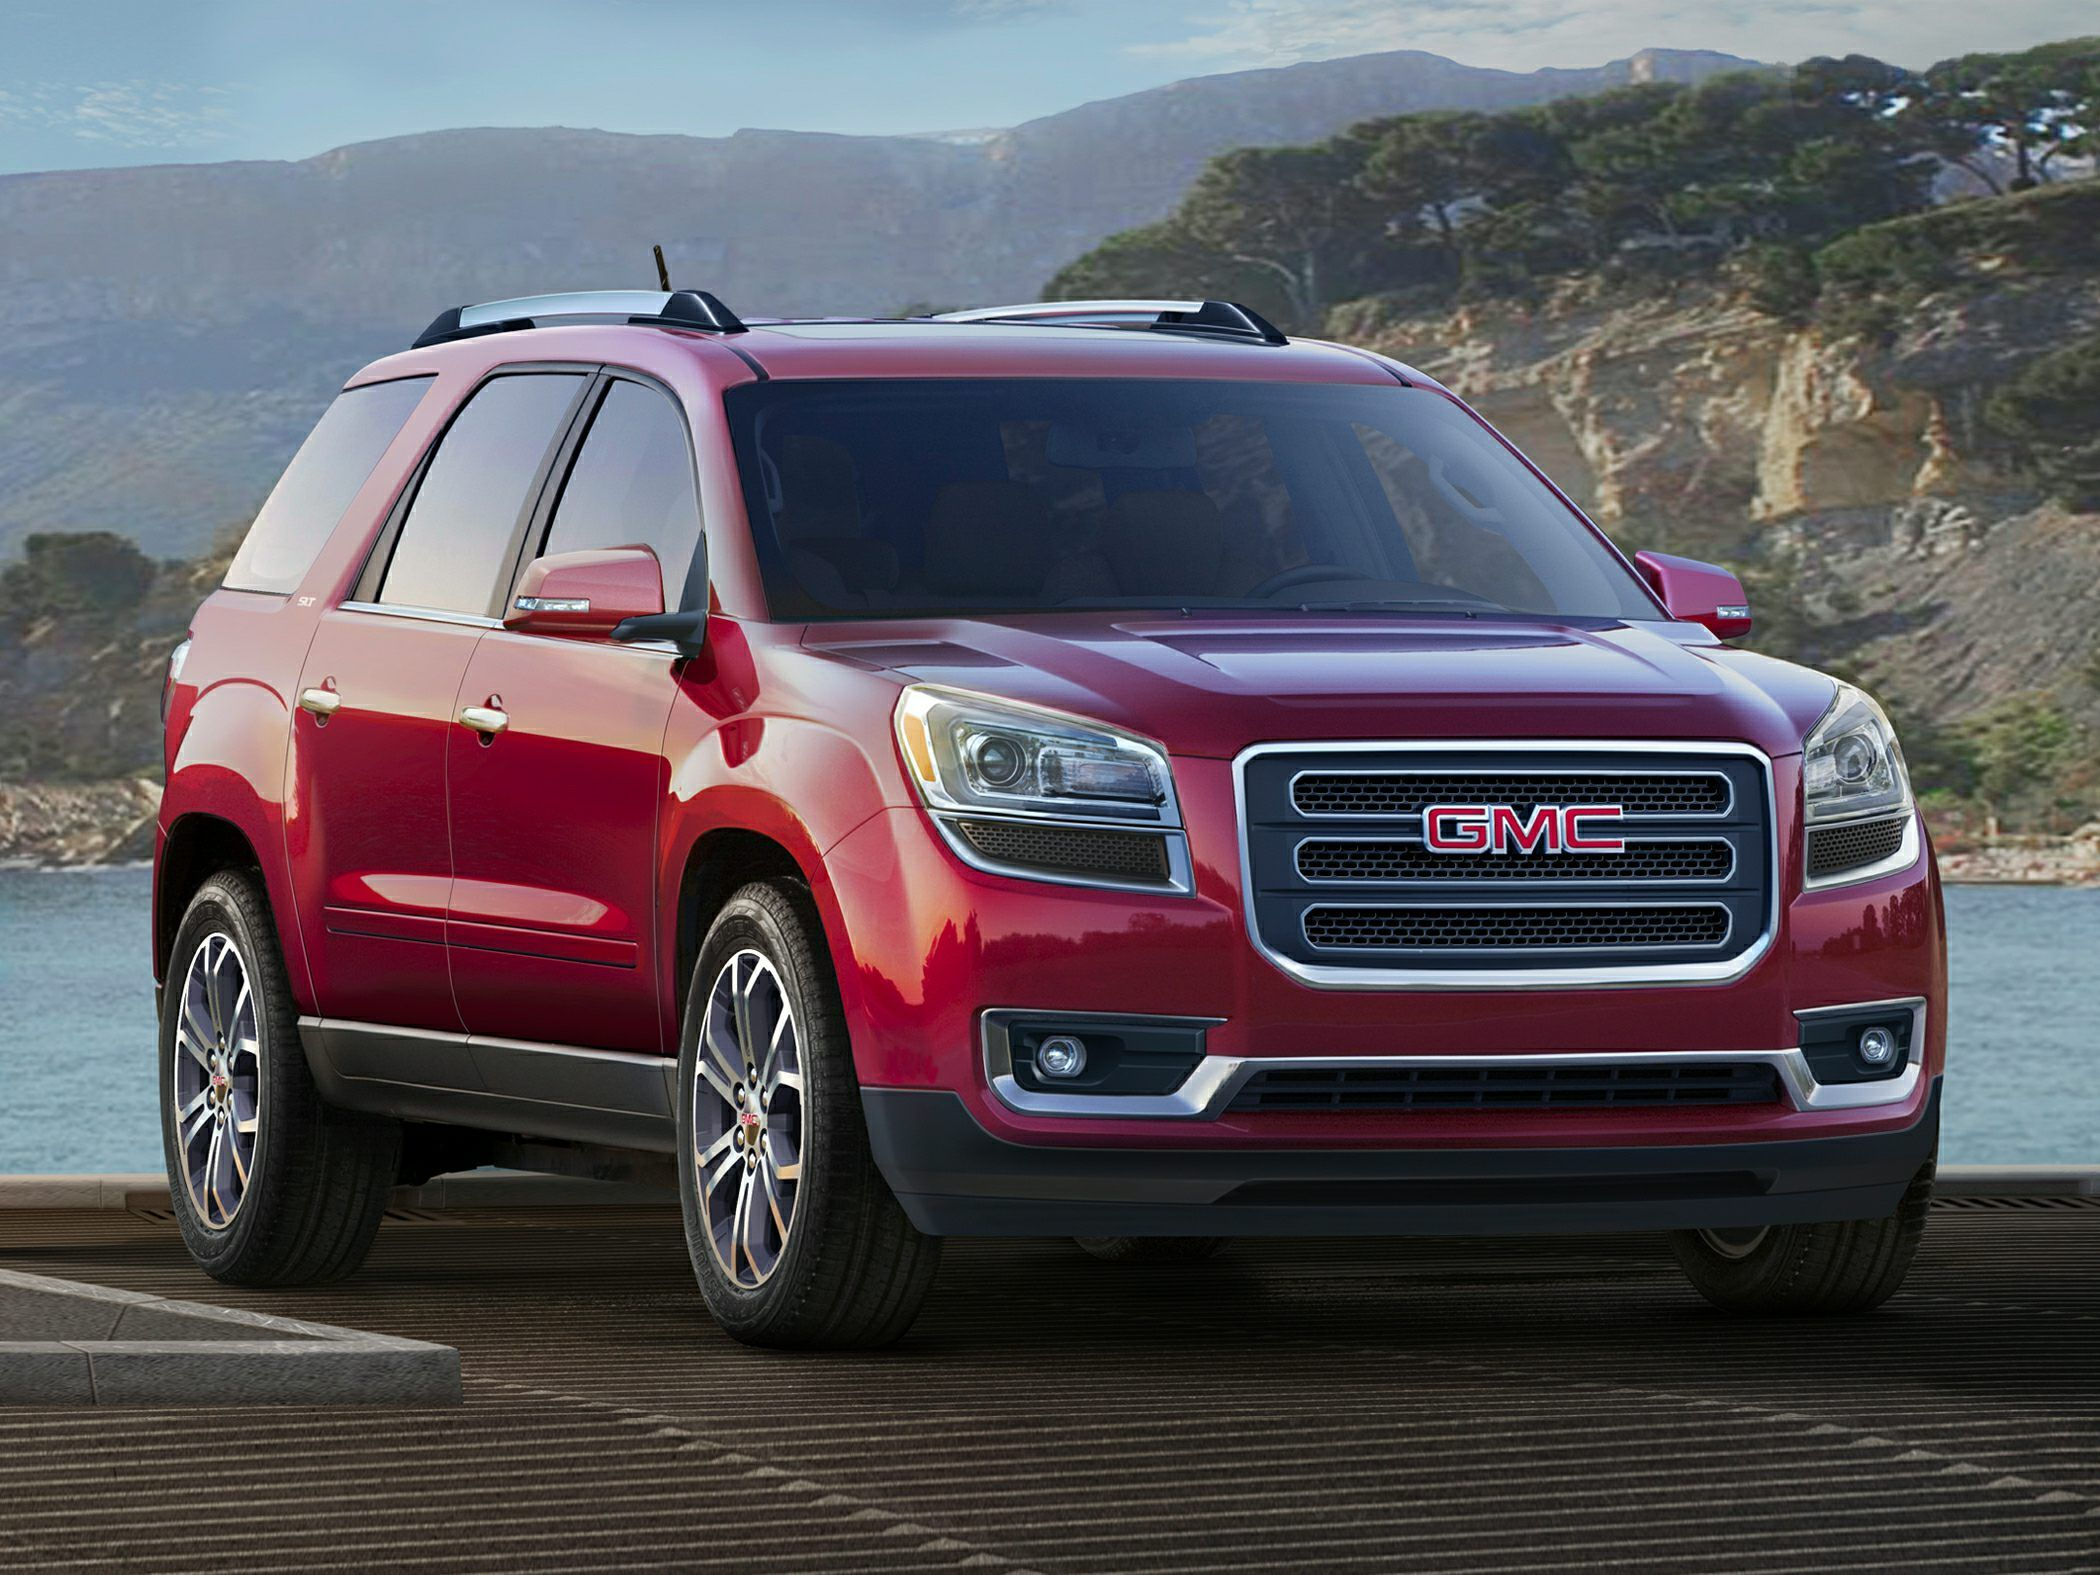 New 2014 Gmc Acadia Price Photos Reviews Safety Ratings Gmc Suv Crossover Suv Best New Cars